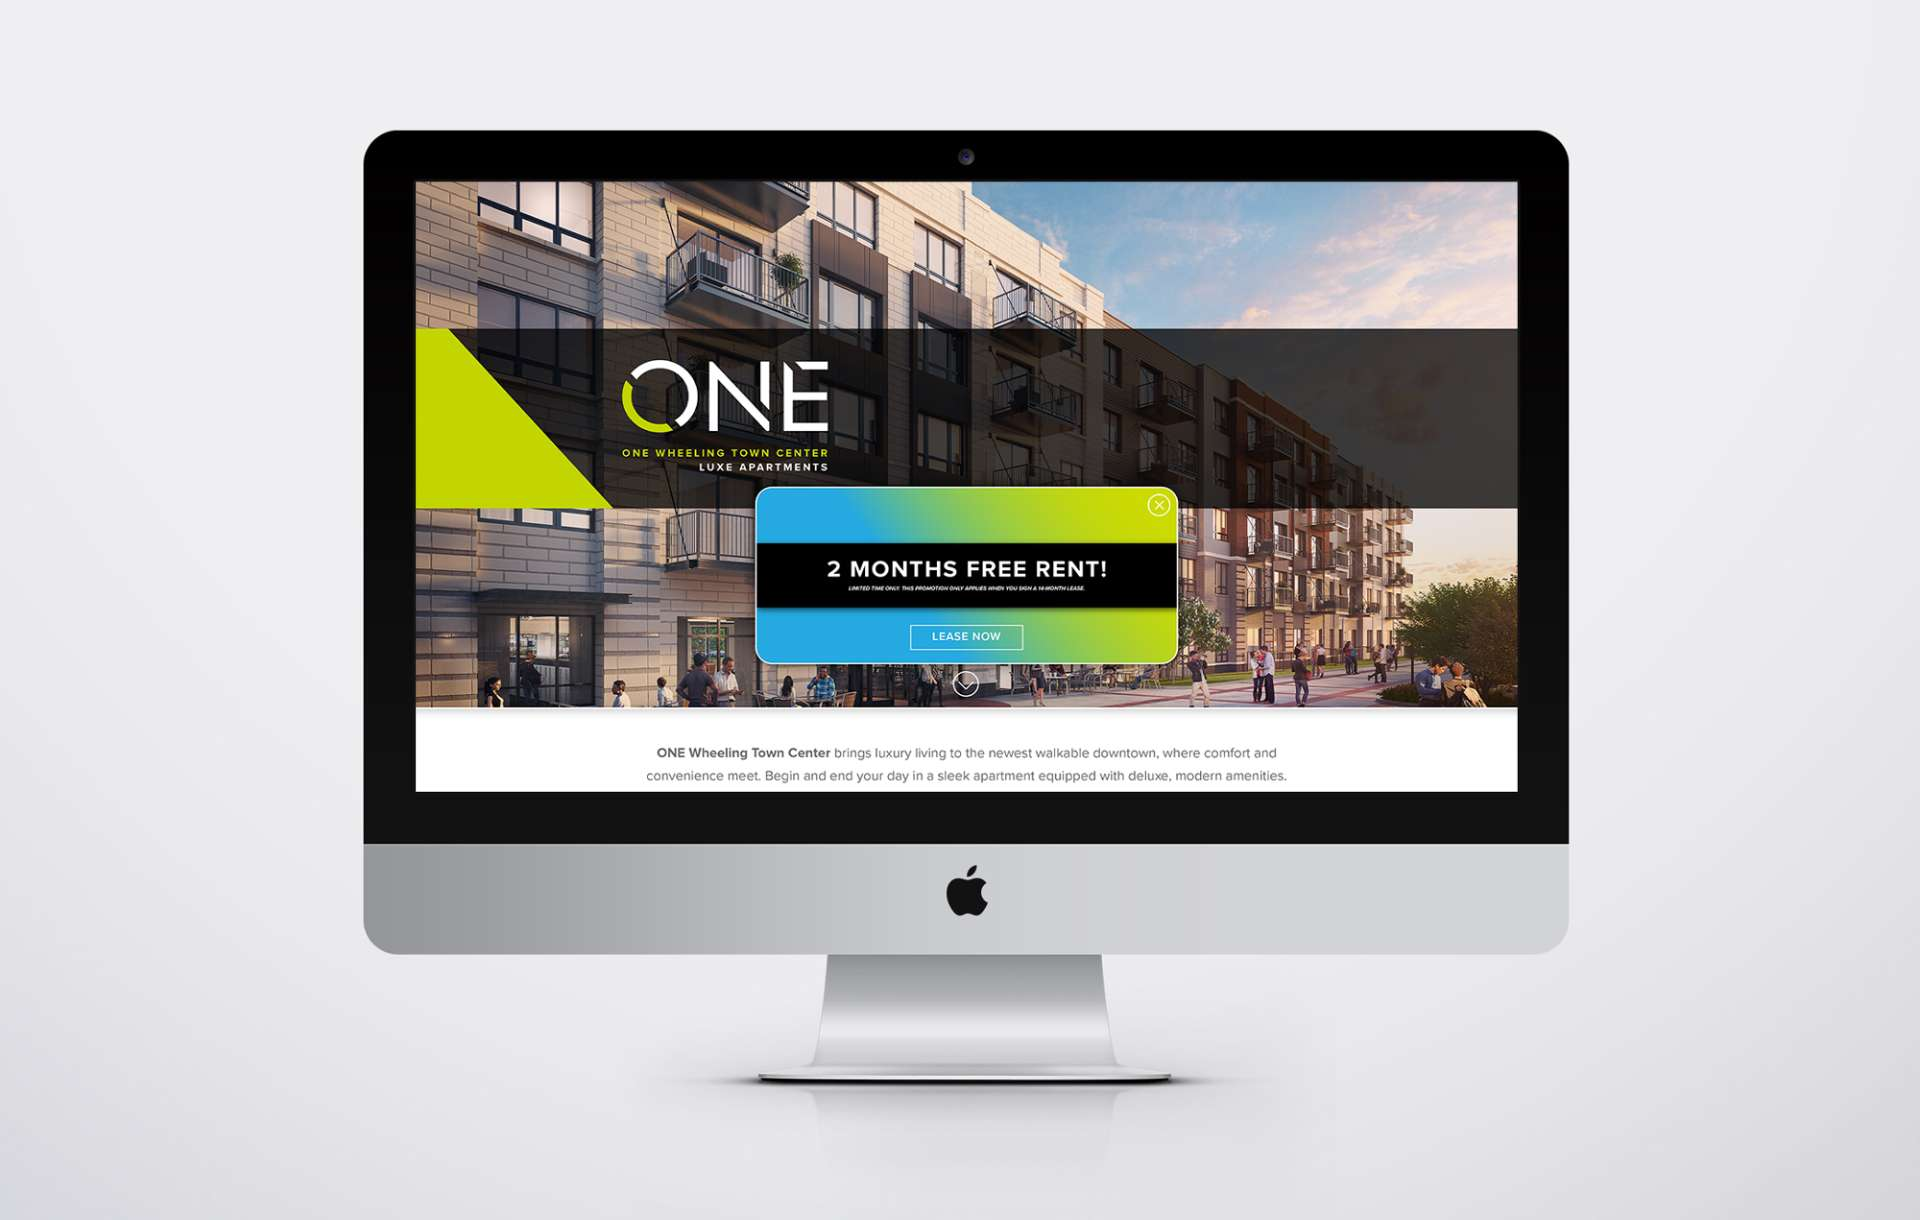 ONE Wheeling Town Center website homepage on a desktop computer